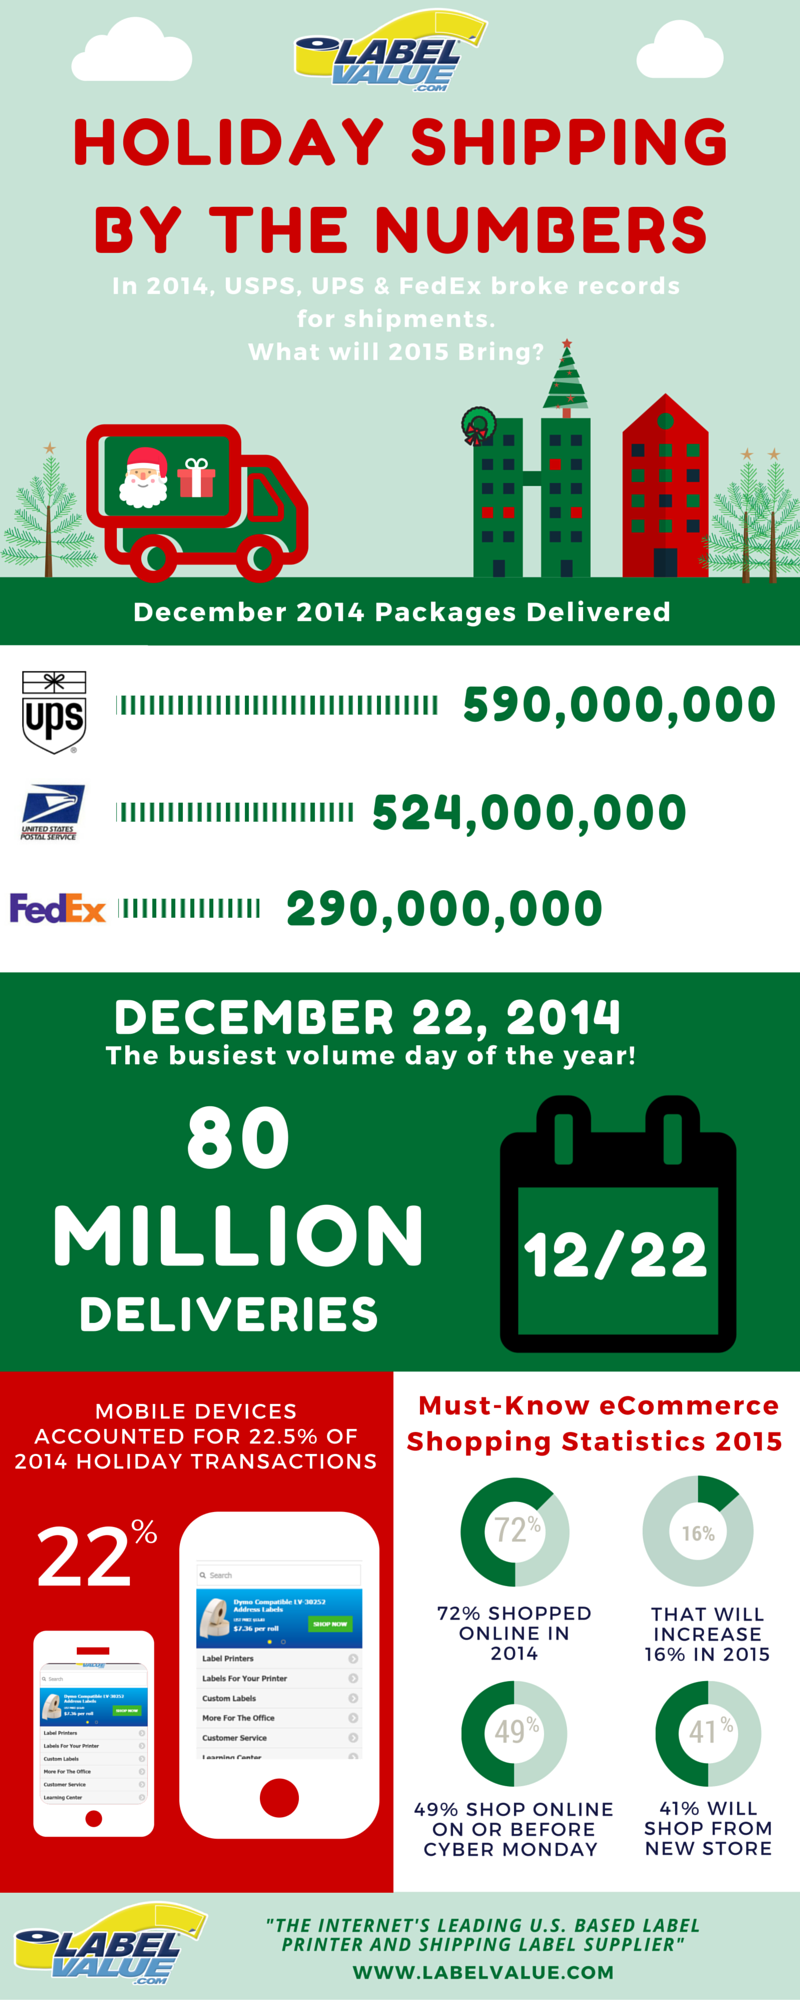 2015 Holiday Shipping Statistics Infographic